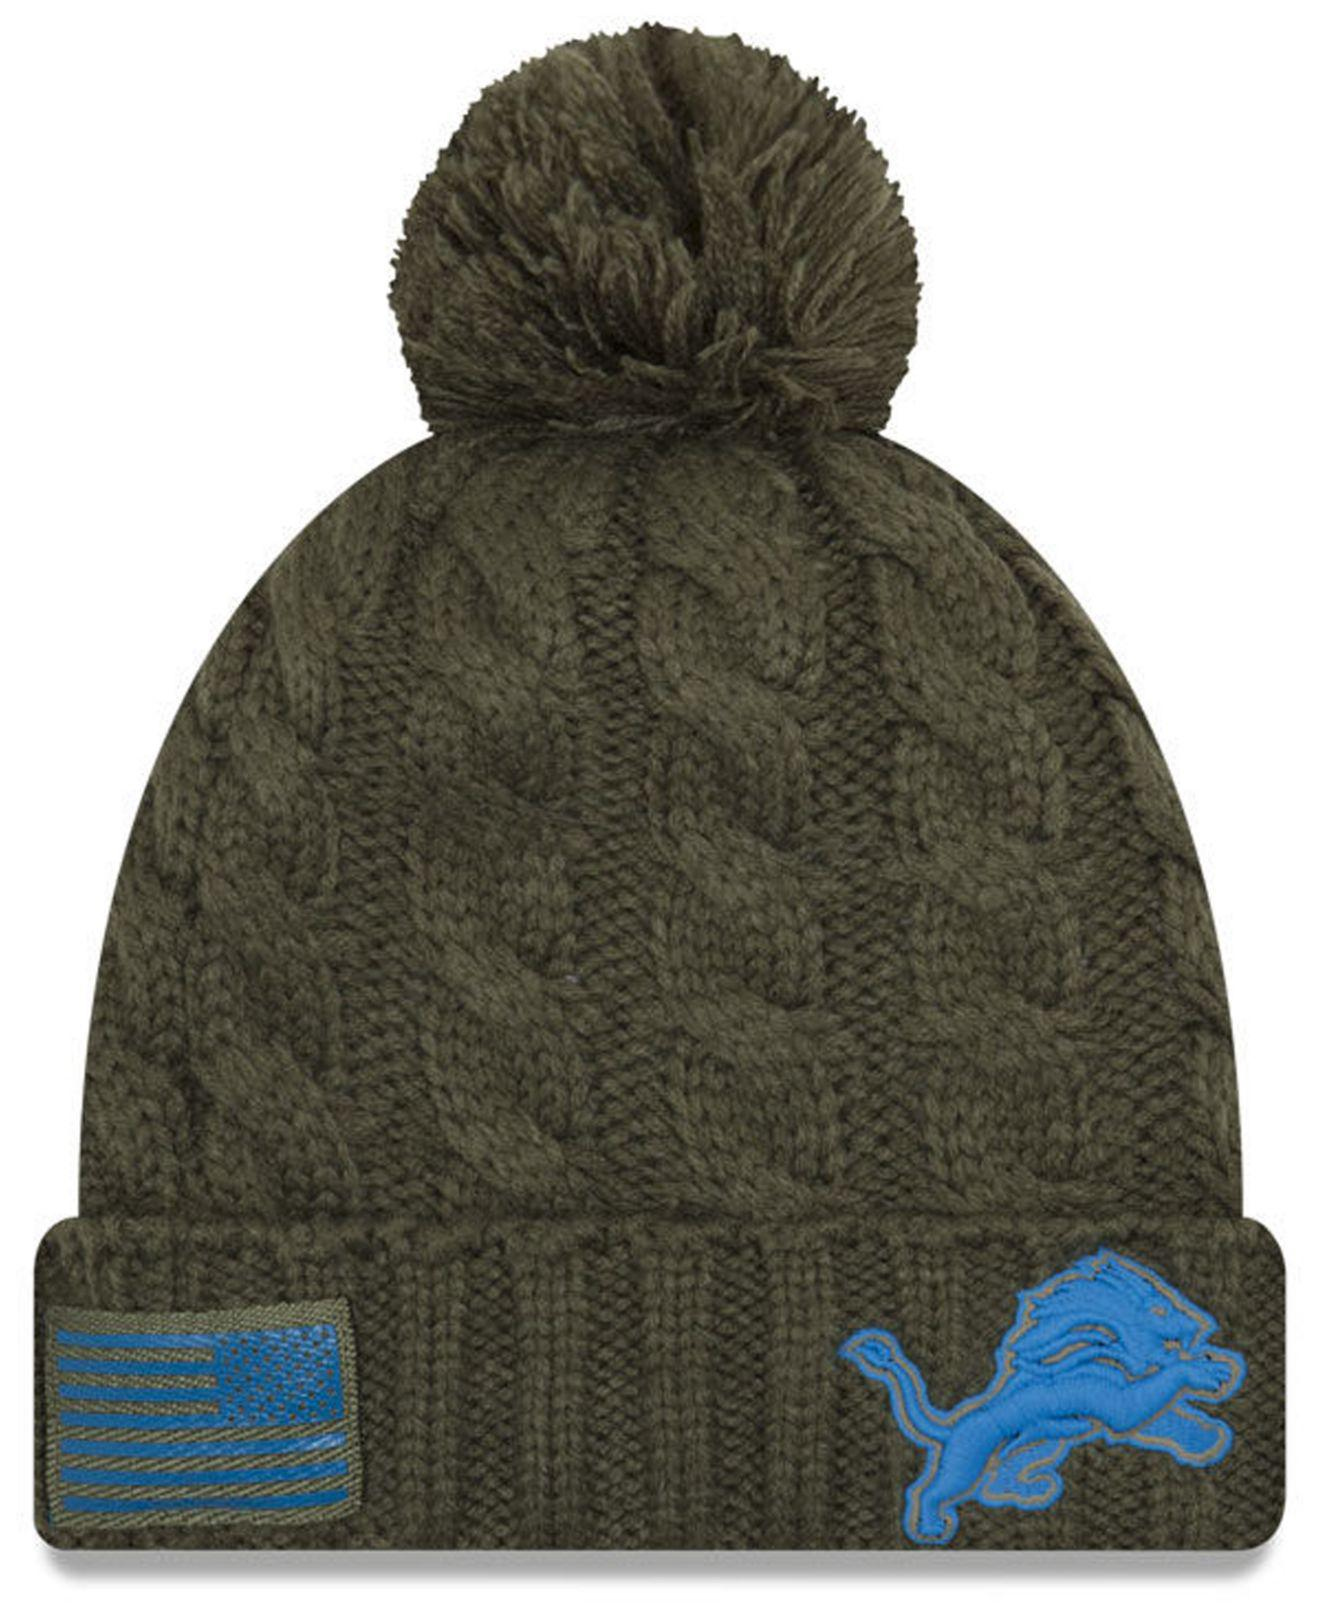 Lyst - Ktz Detroit Lions Salute To Service Pom Knit Hat in Green 9ed1c56d5